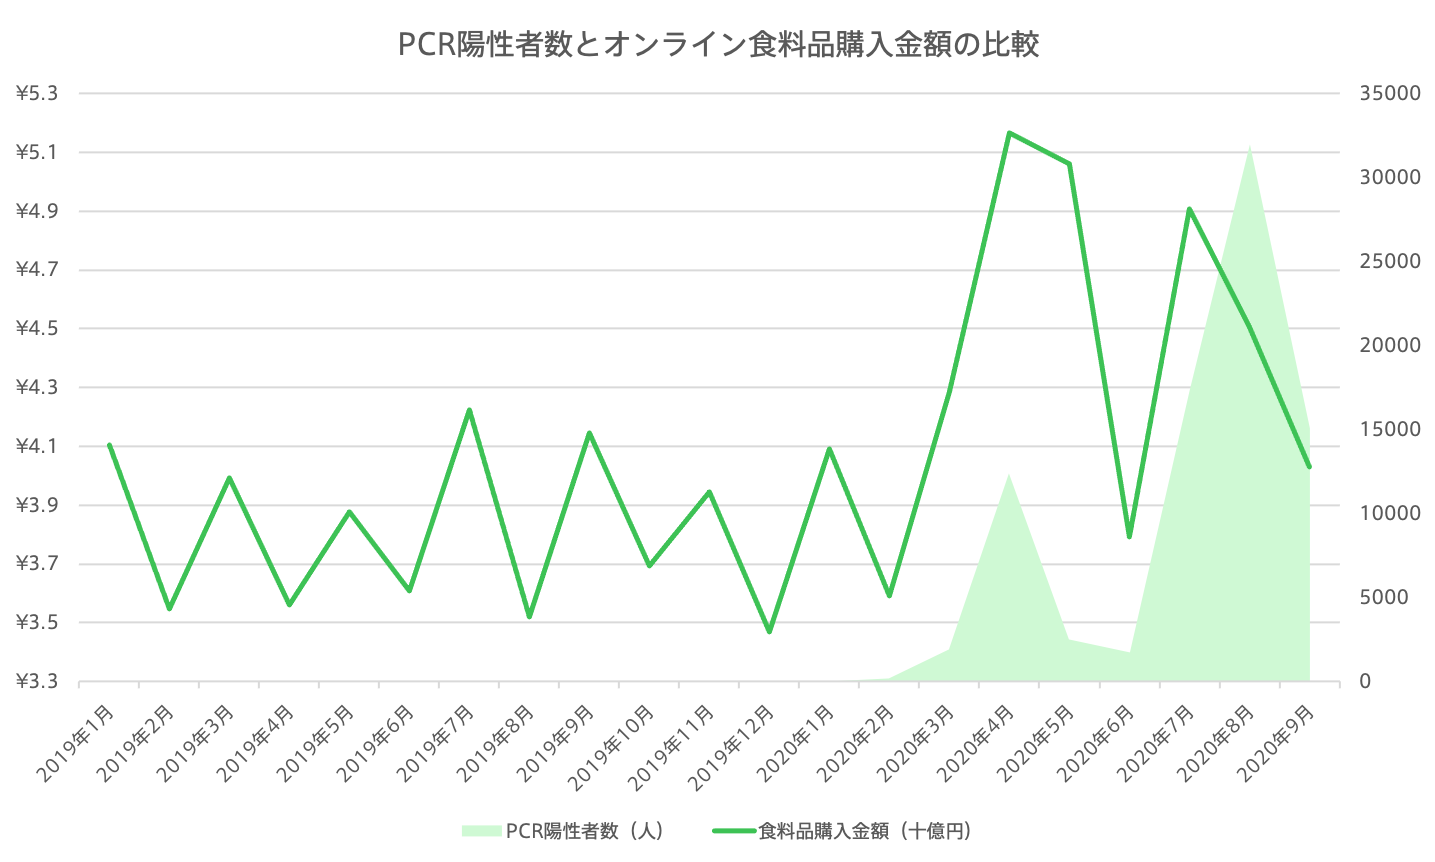 Moneytree data analysis on PCR infected rate and online food purchase